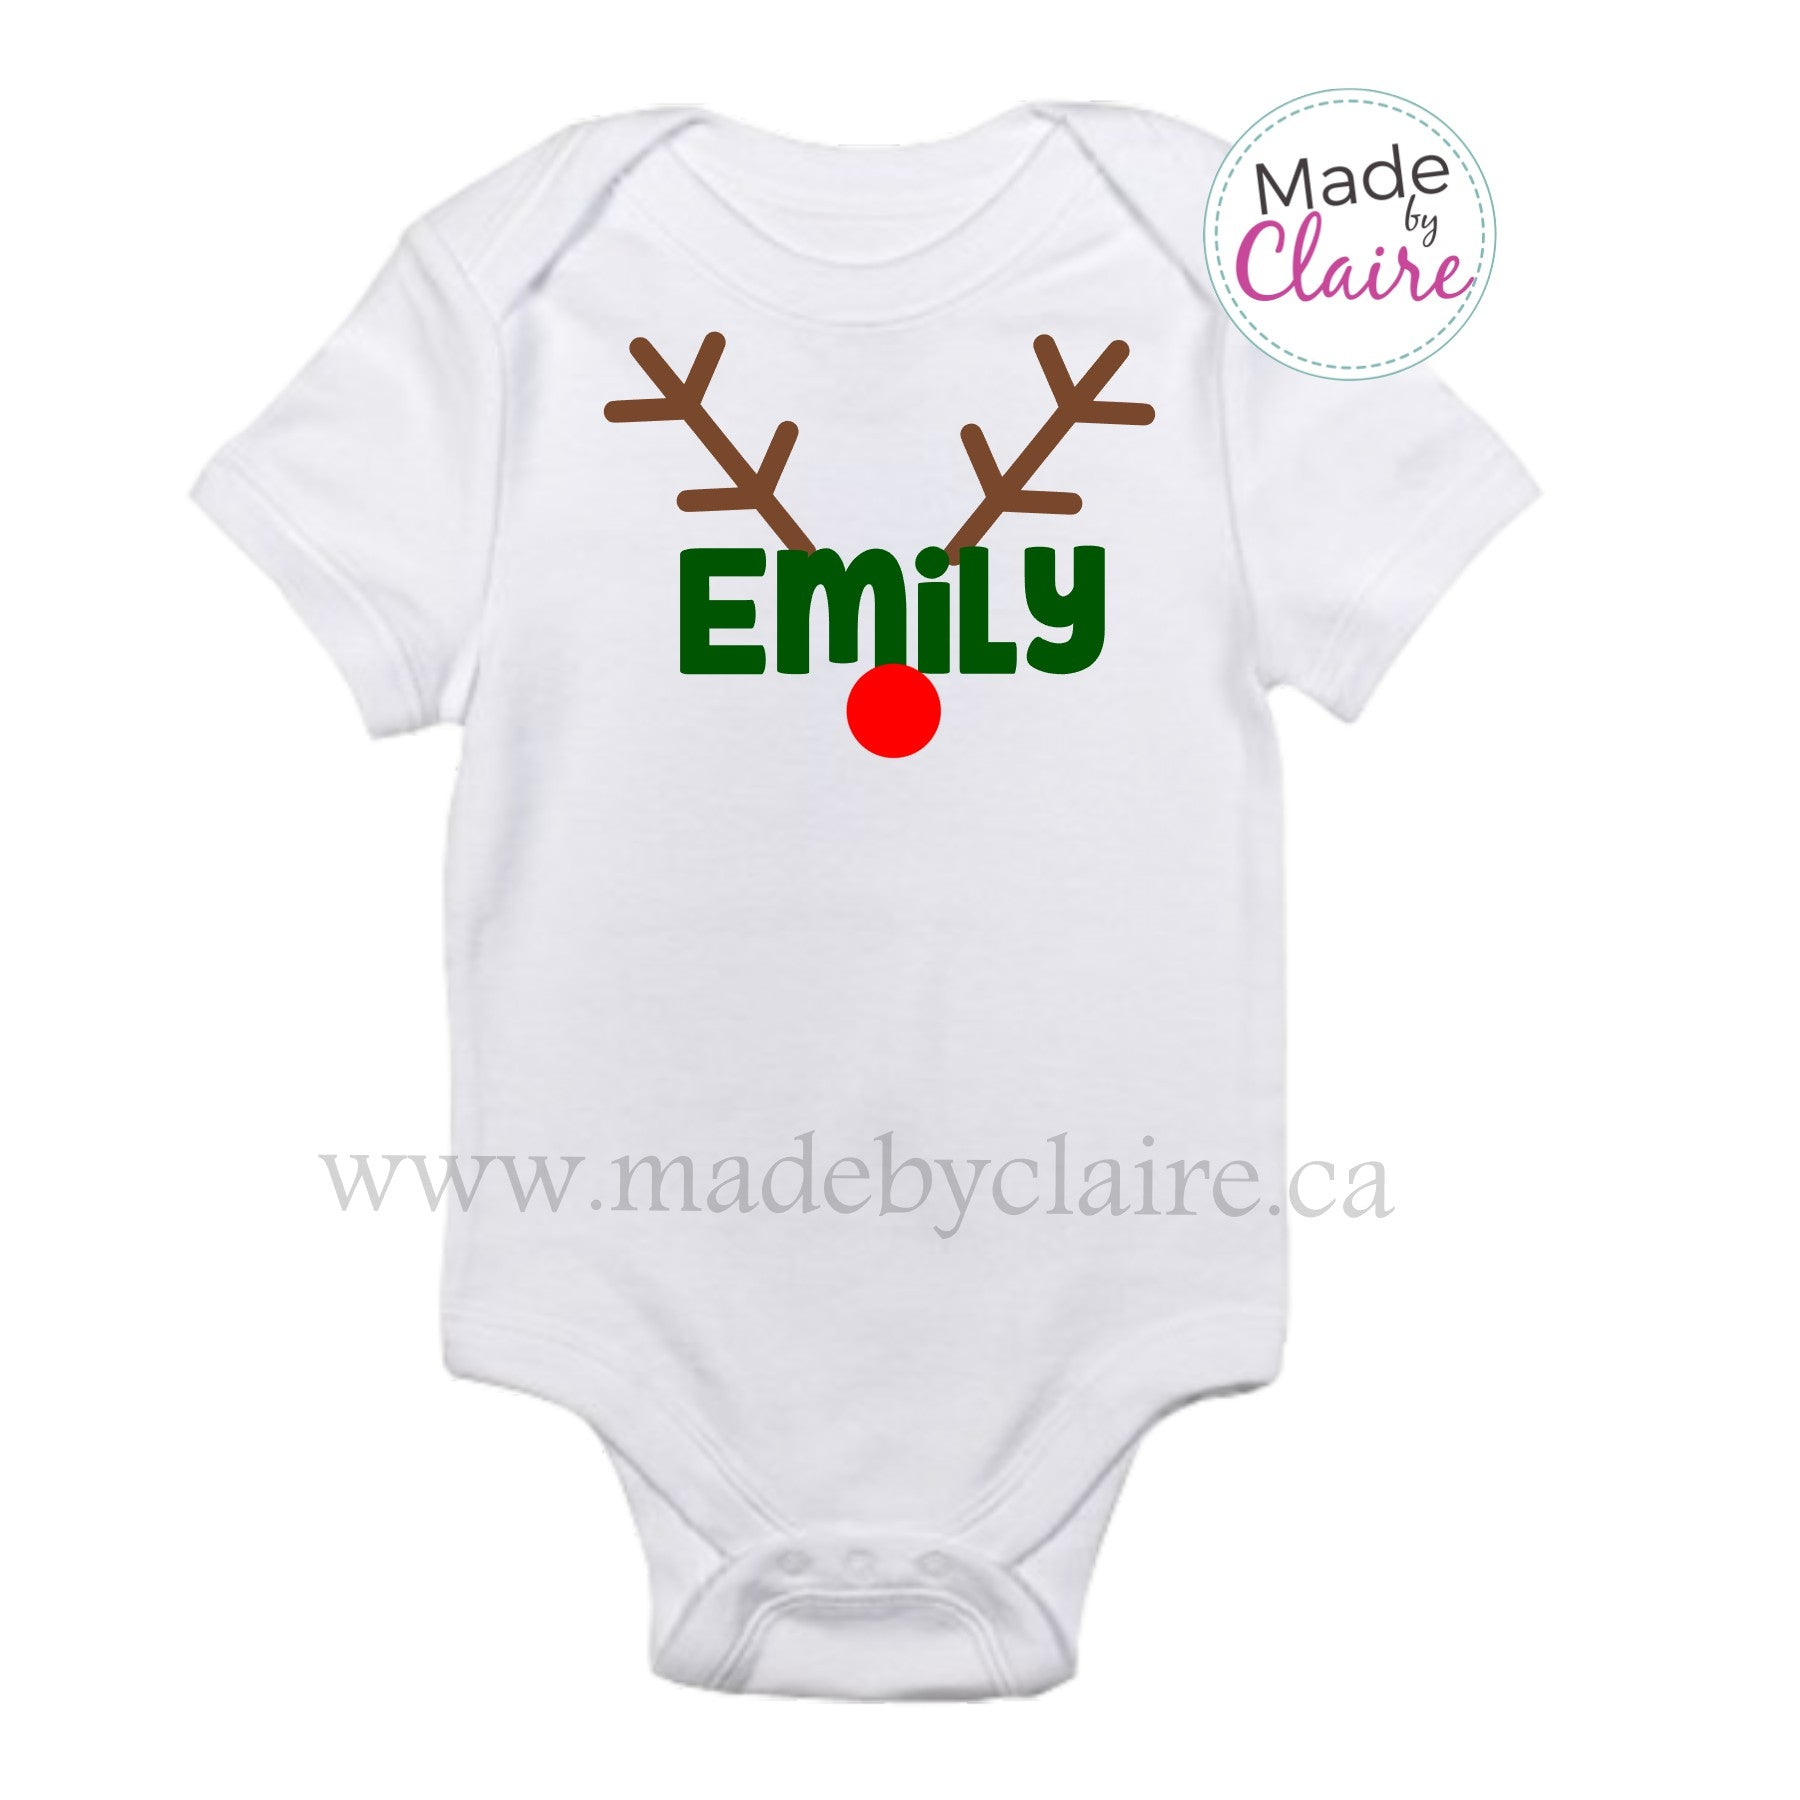 c67e011c9 Christmas Reindeer Onesie Personalized with Your Child's Name ...